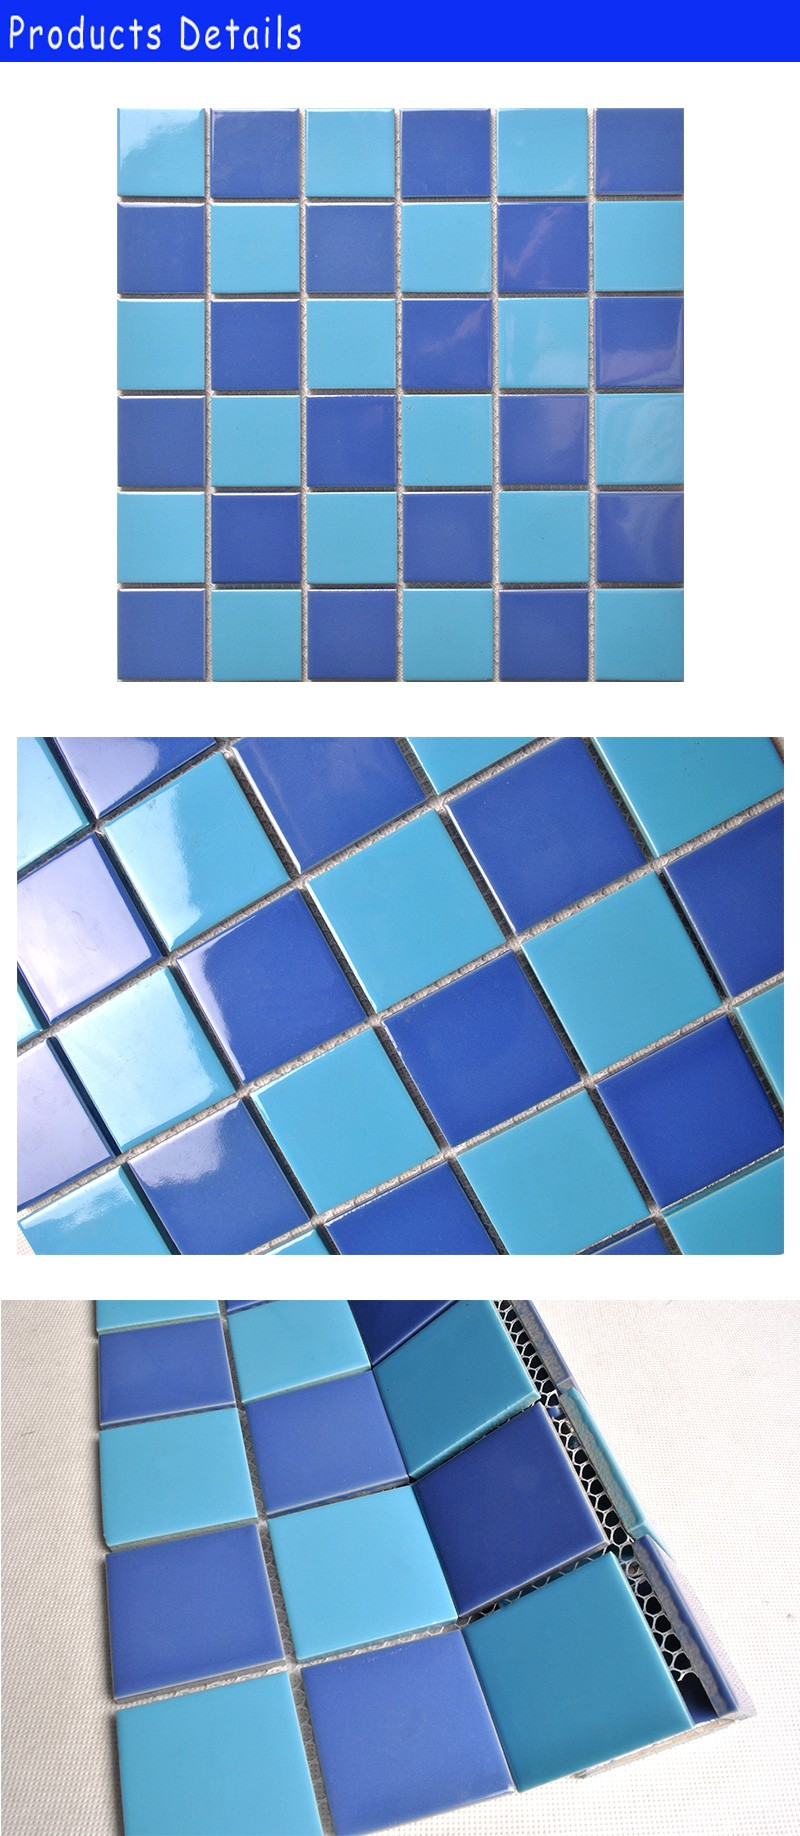 Glazed Ceramic Mosaic Tiles For Swimming Pool And Bathroom Wall In Uk Buy Ceramic Mosaic For